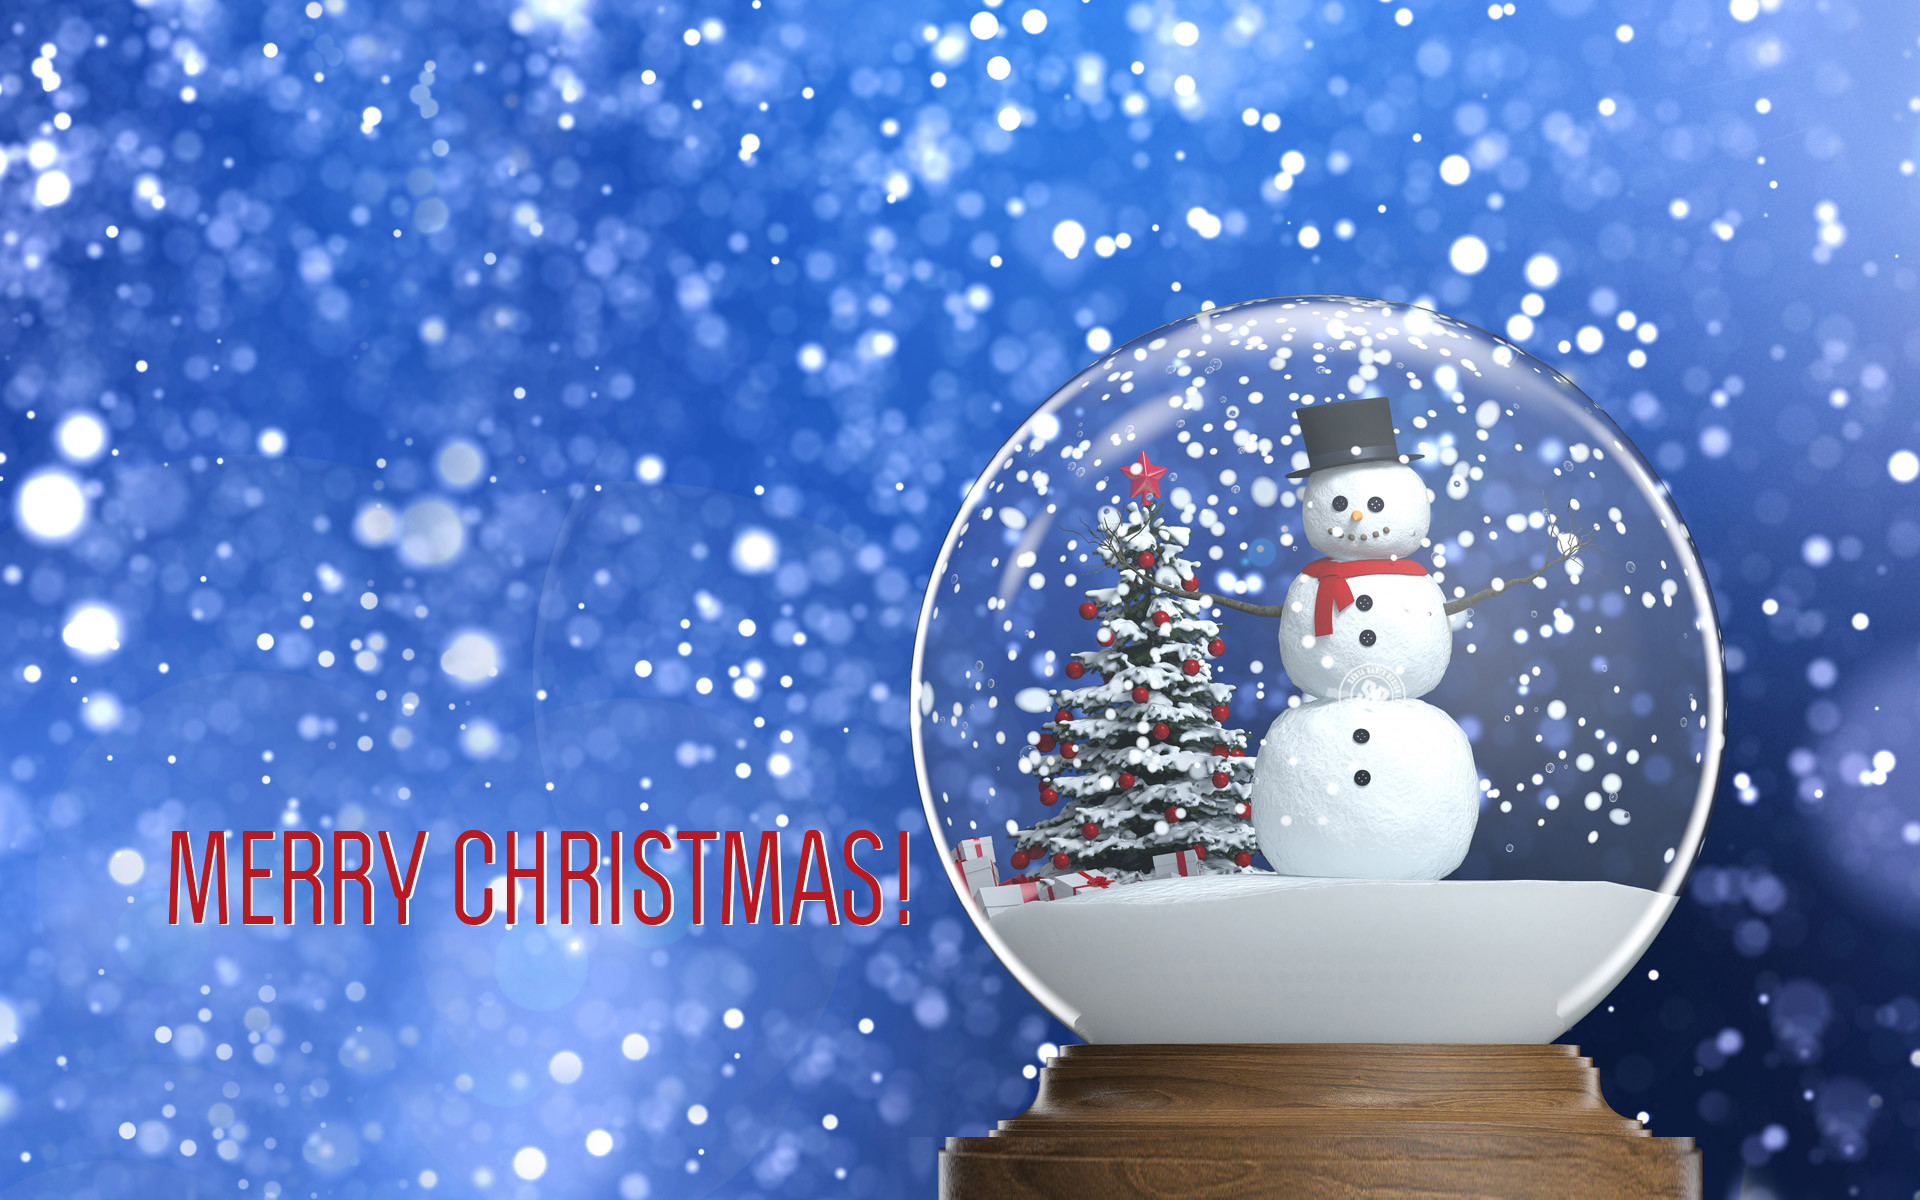 Res: 1920x1200, merry-christmas-free-image